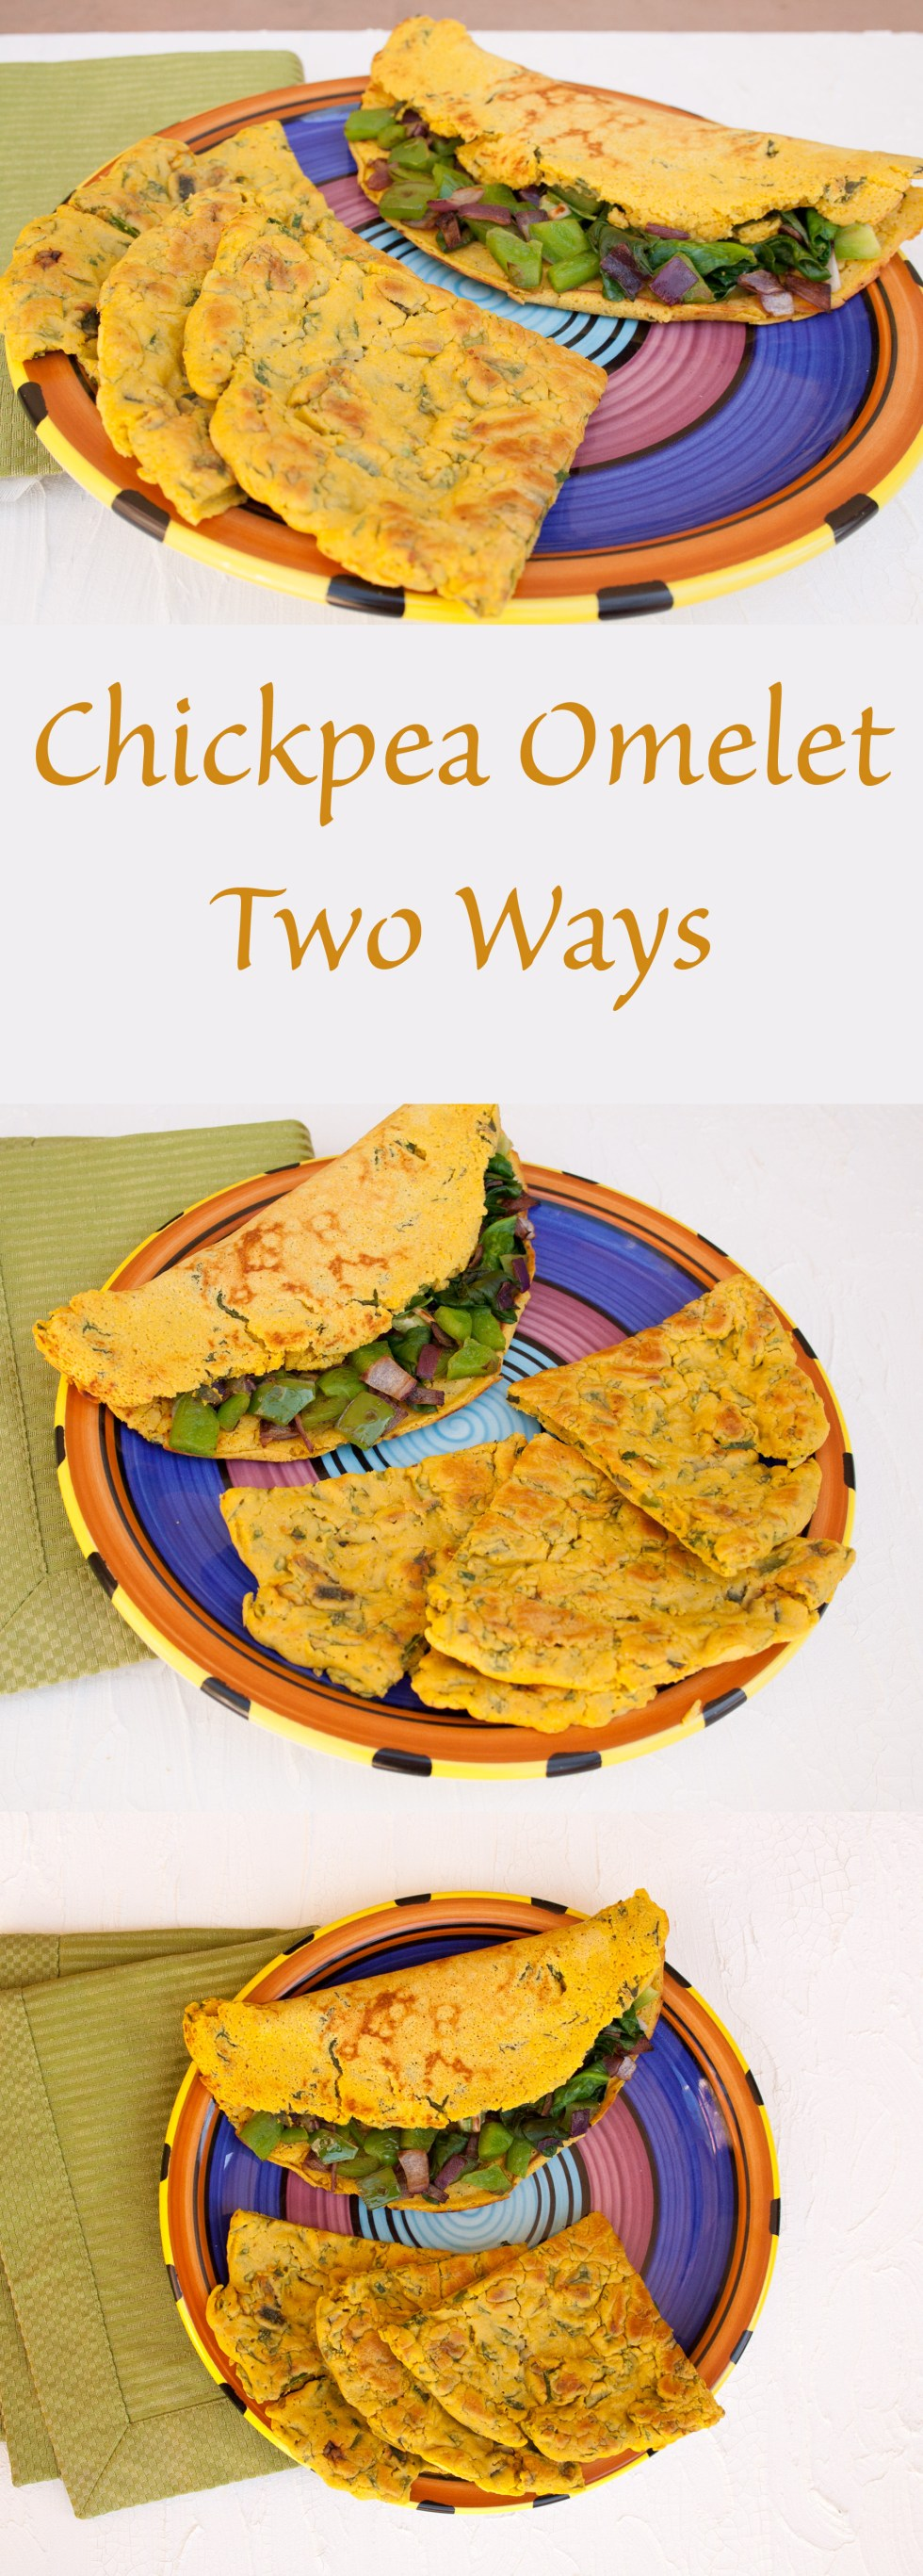 Chickpea Omelet Two Ways (vegan, gluten free) - These savory vegan omelets are a great way to start your day. Make with vegetables mixed in or place on top.